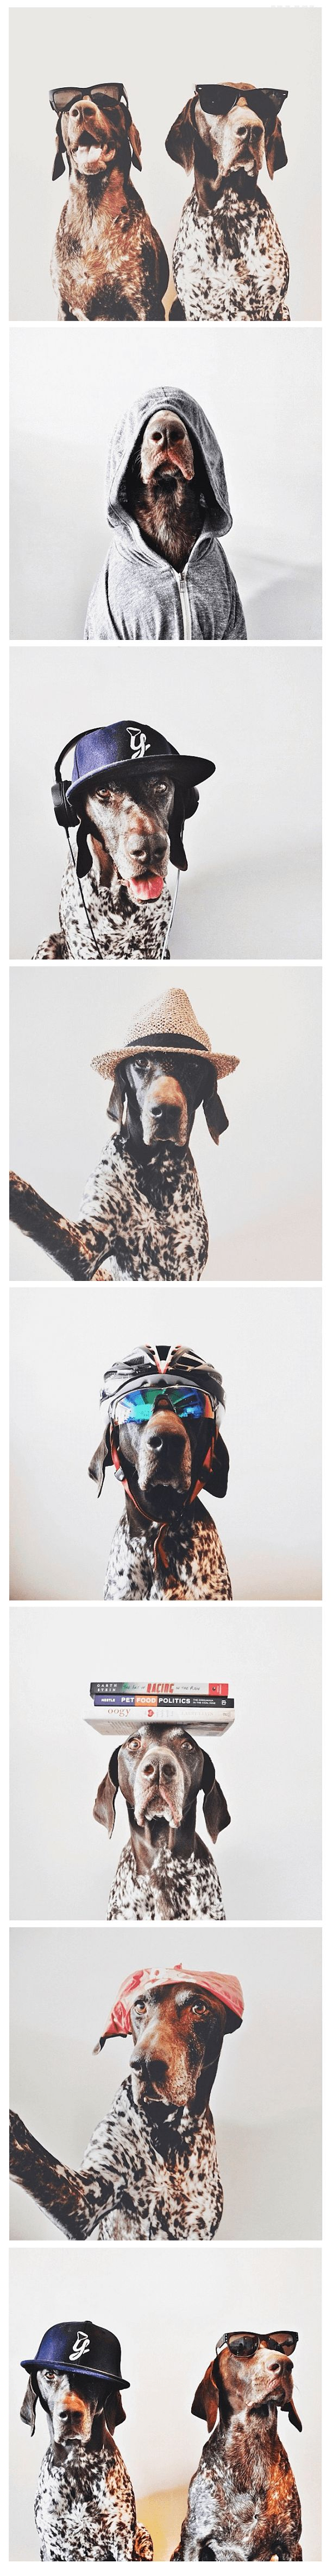 21 Ways of Showing How German Shorthaired Pointers Outrank Anyone in Awesomeness